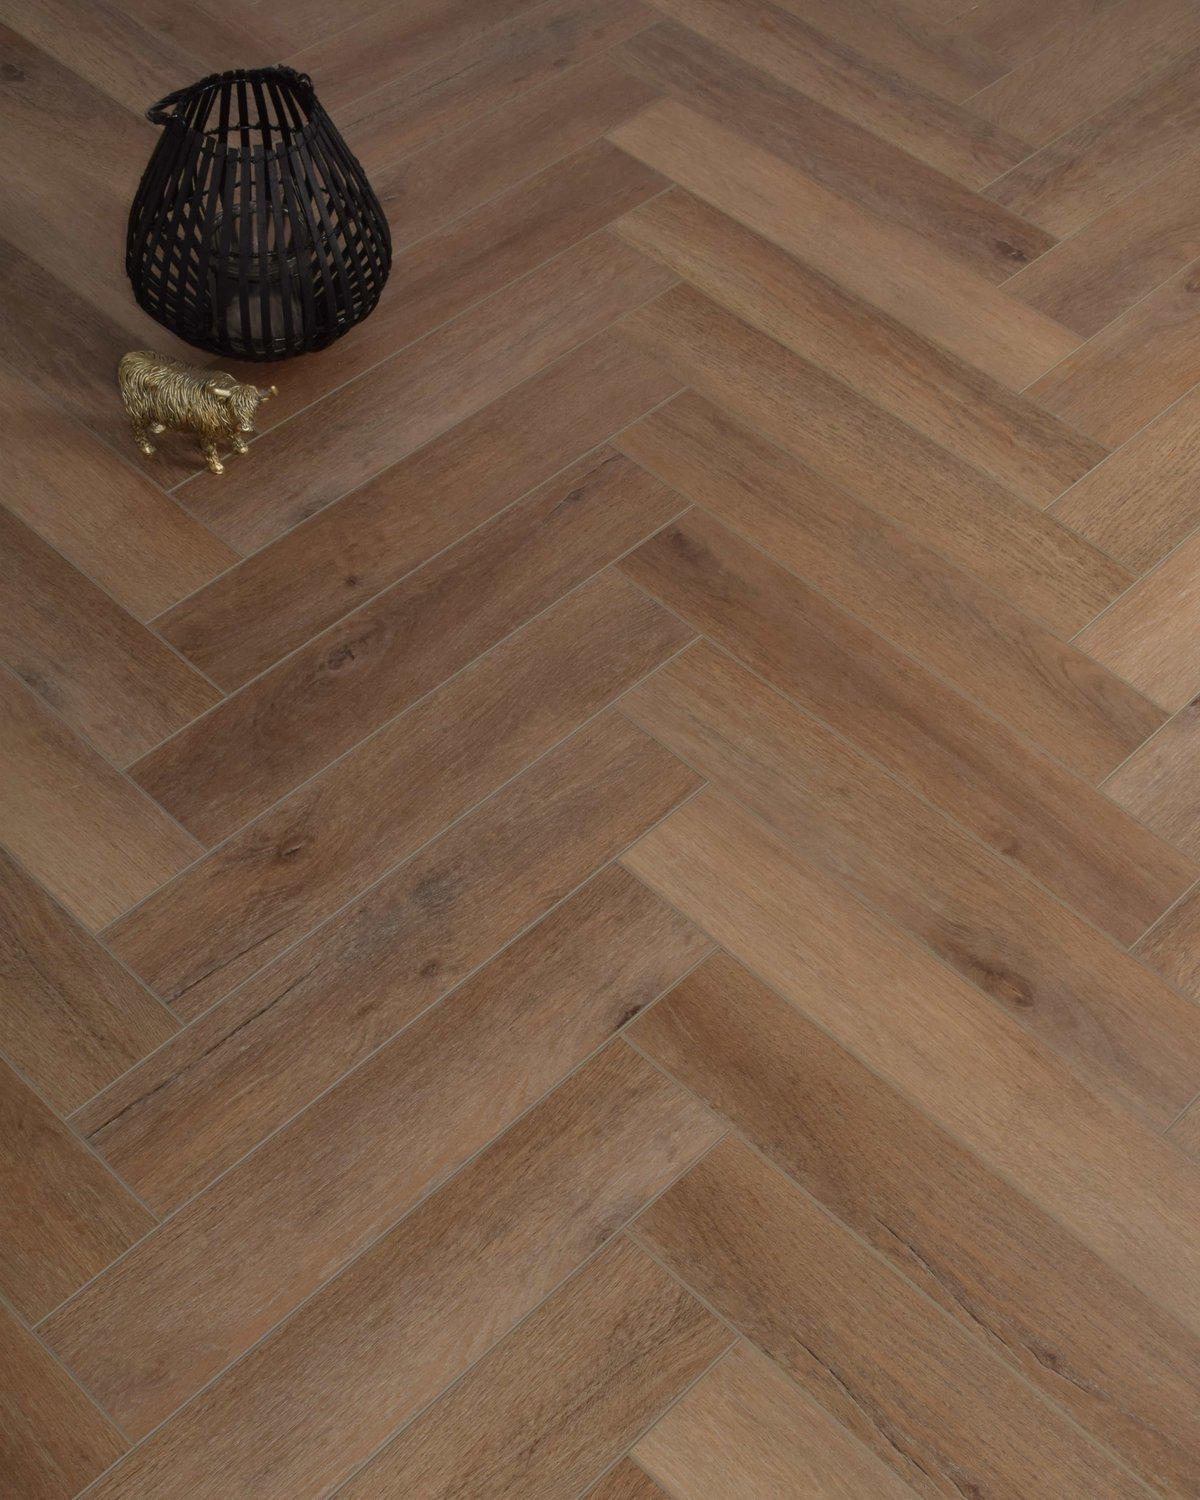 Underfoot Danube Herringbone Warm Oak